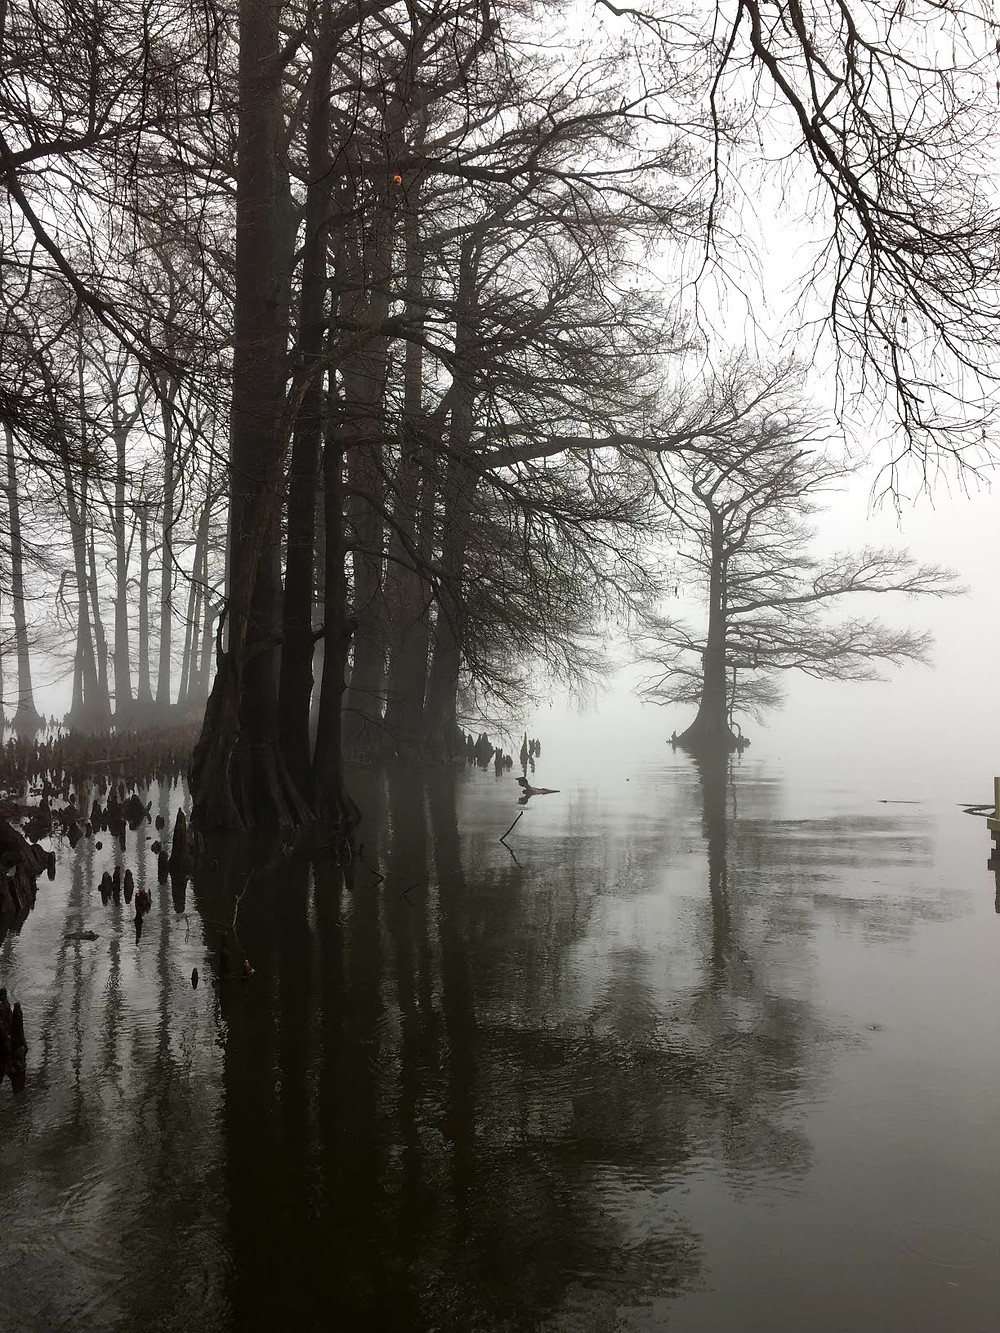 Mist engulfs the Cypress trees on Reelfoot Lake at Reelfoot Lake State Park